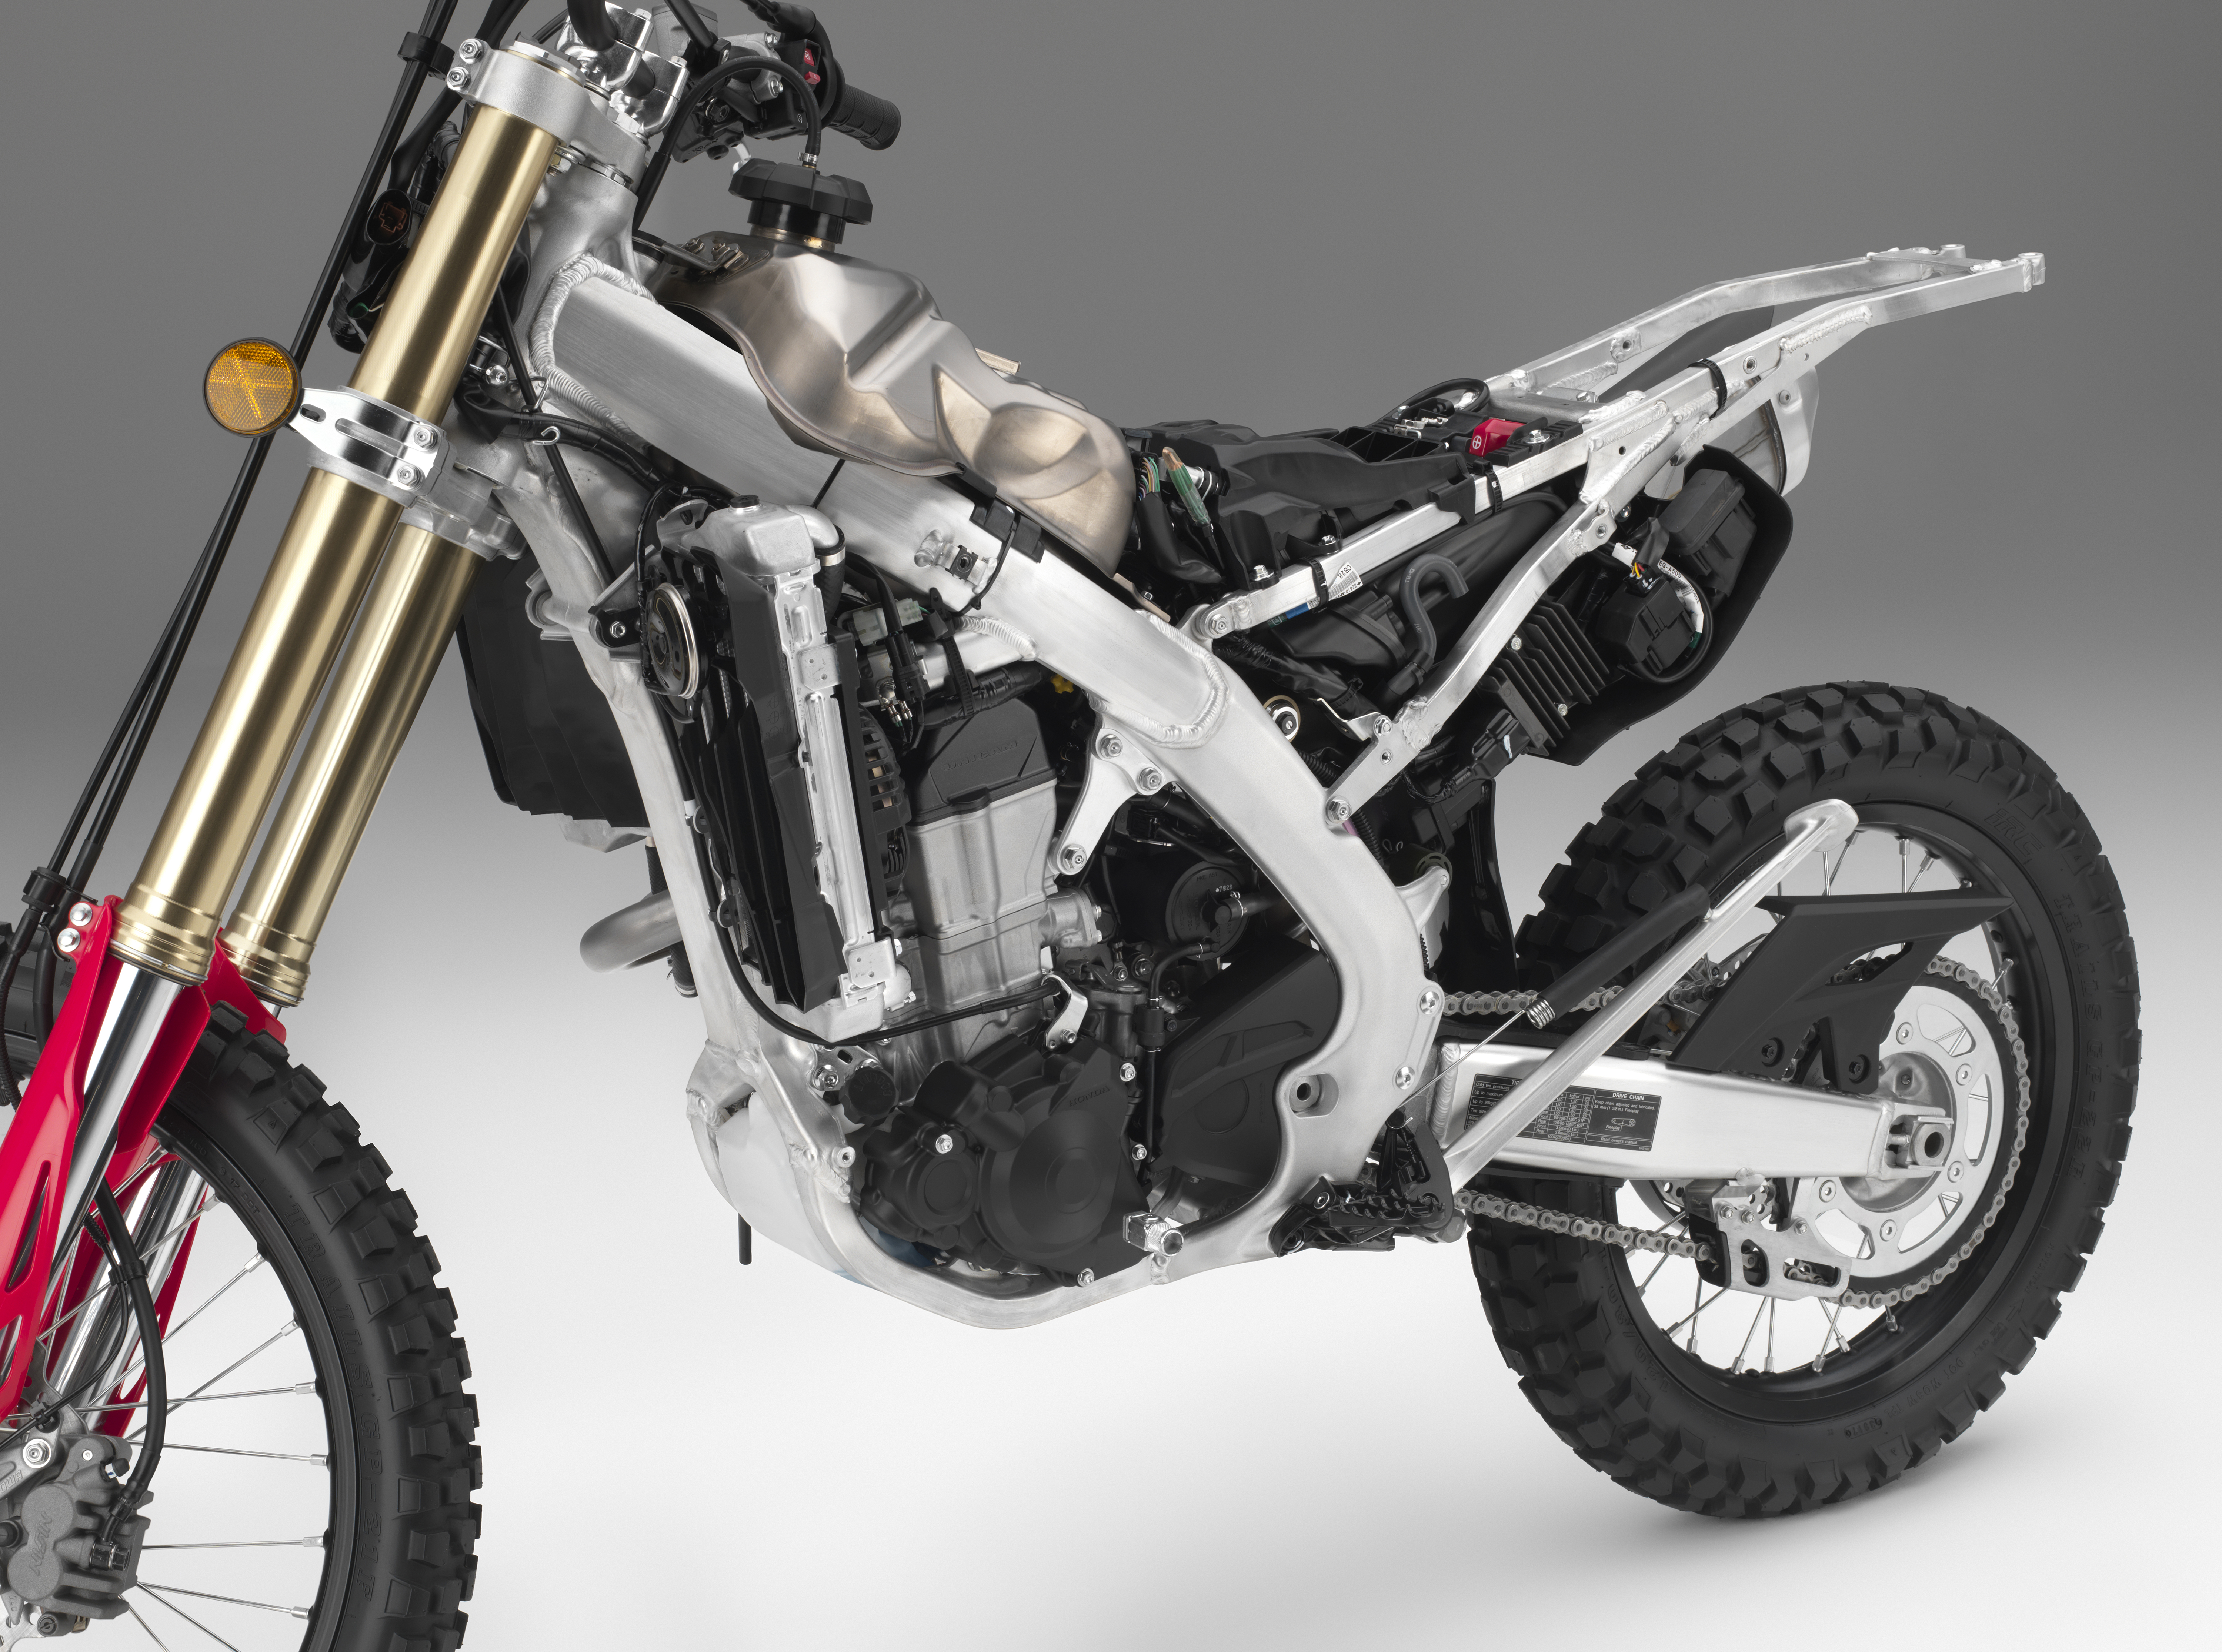 Awe Inspiring 2019 Honda Crf450L First Ride Review Revzilla Evergreenethics Interior Chair Design Evergreenethicsorg